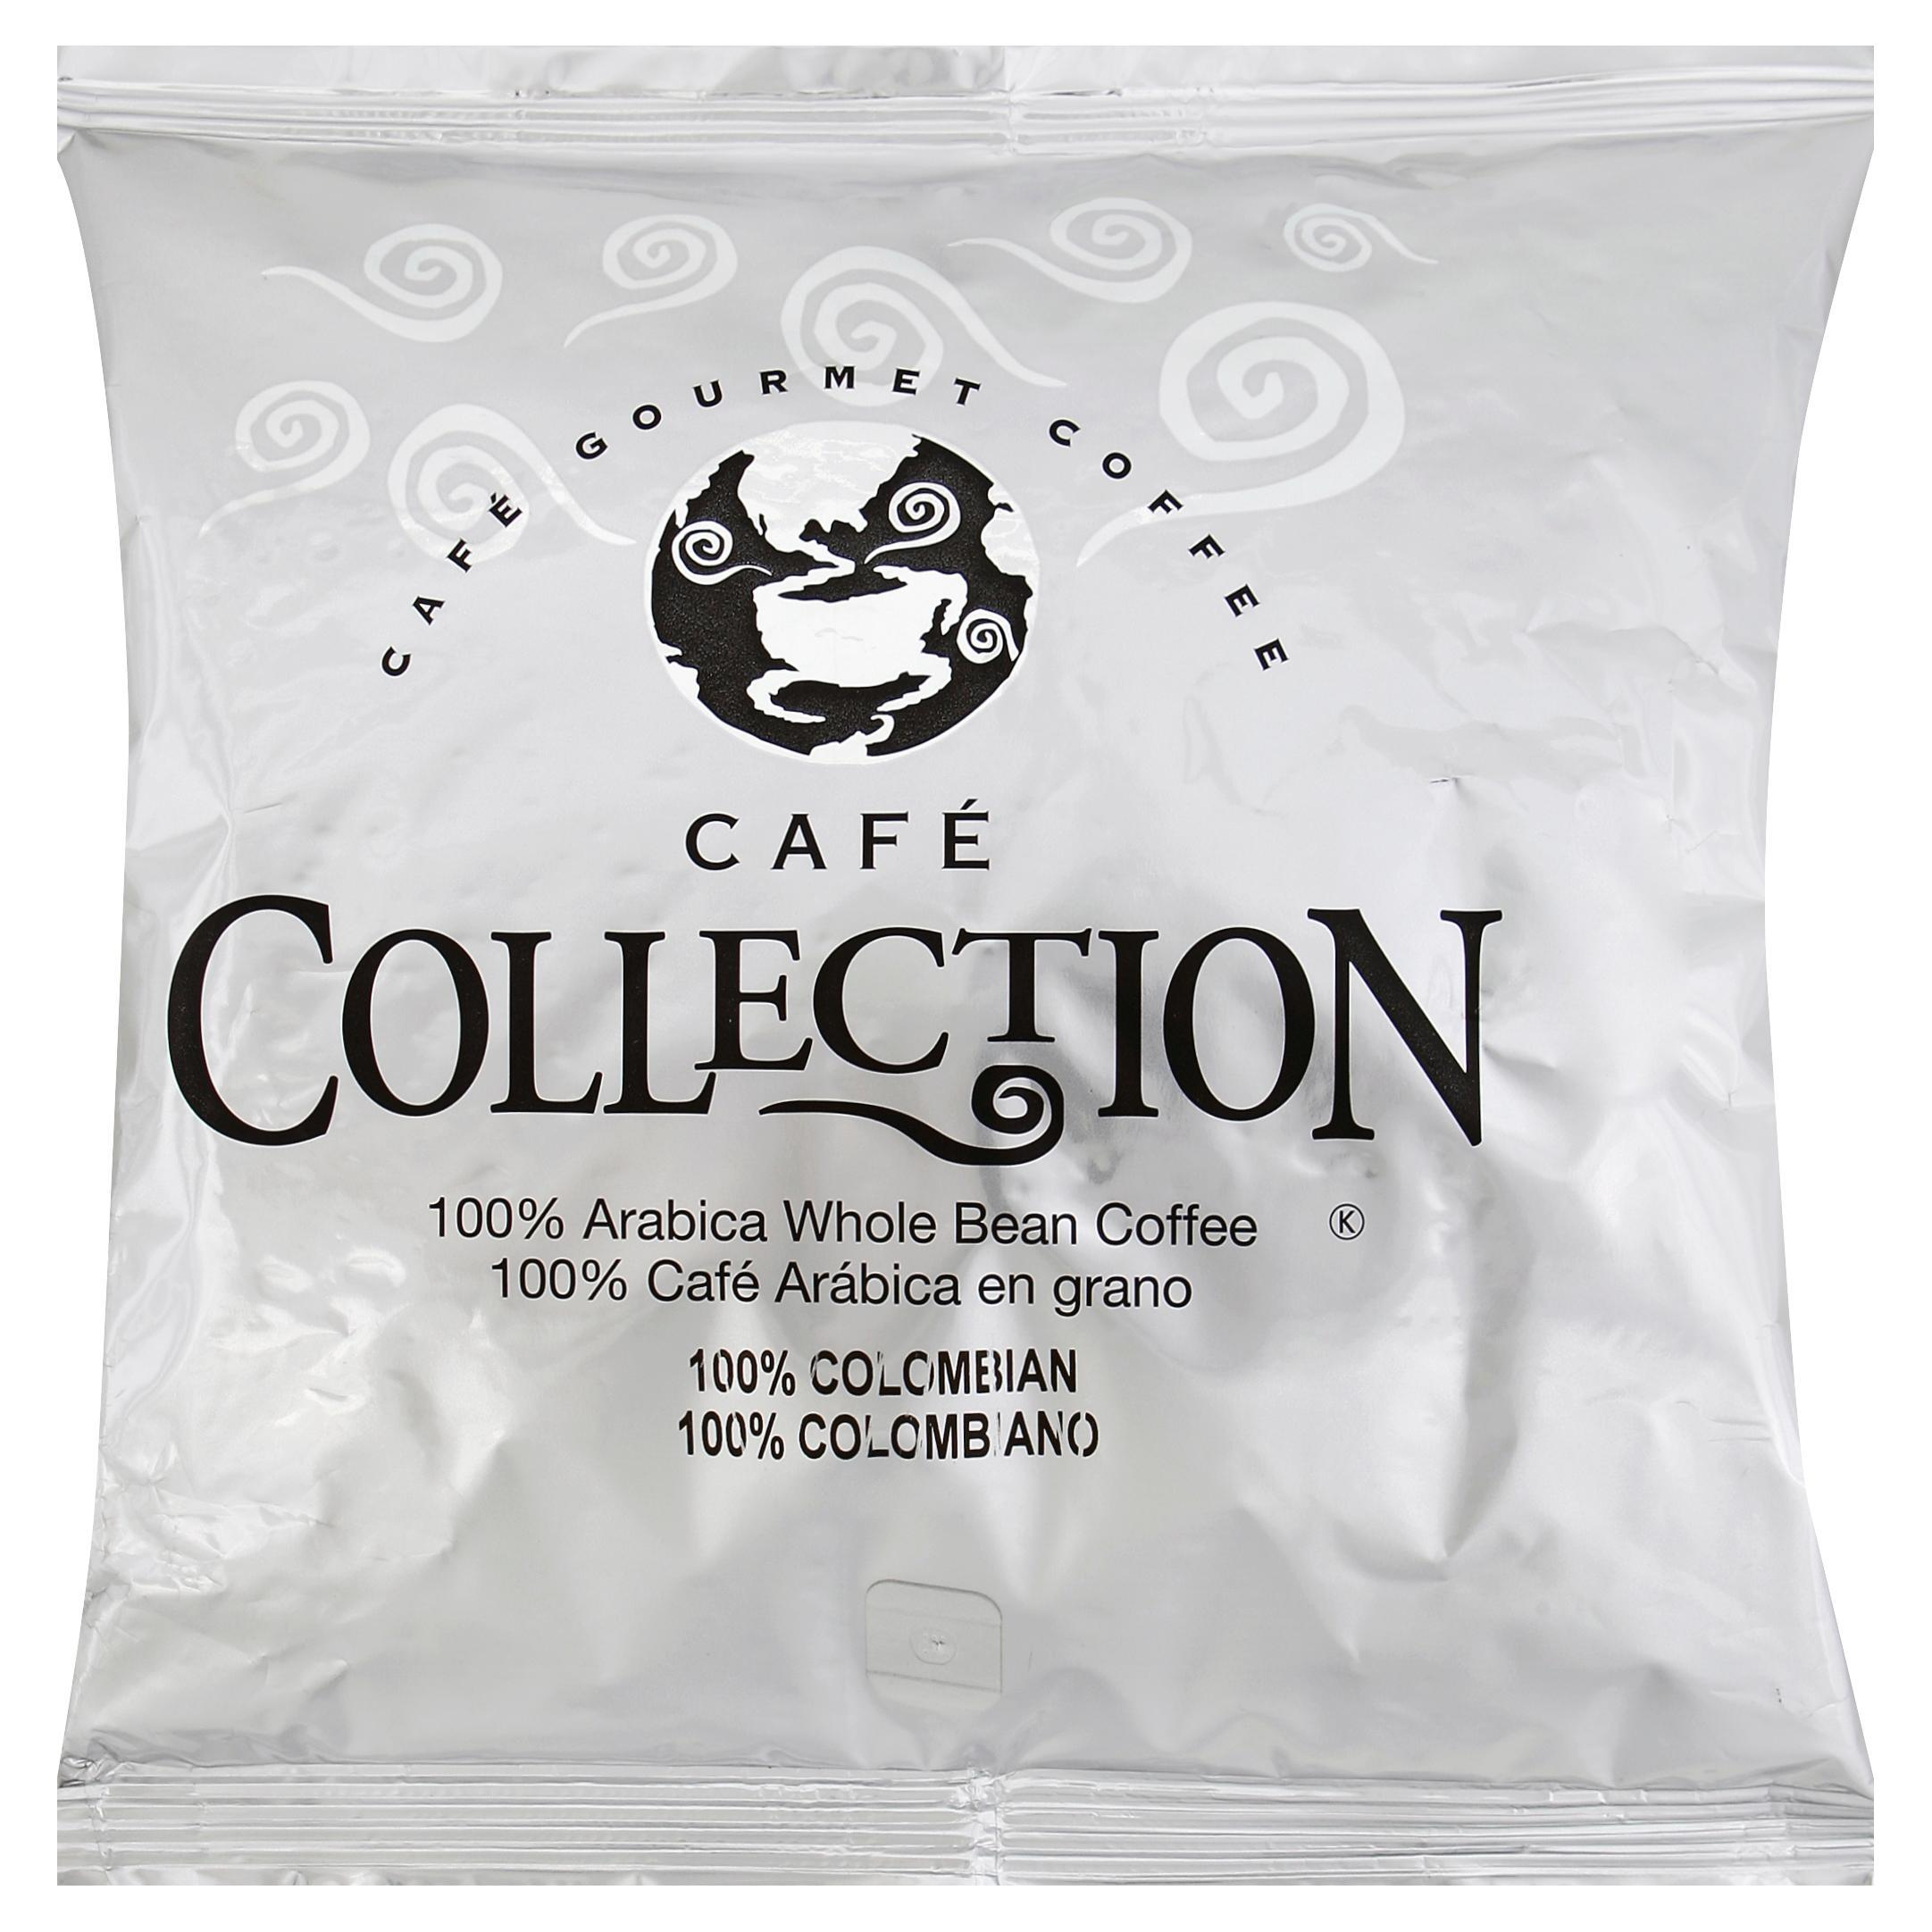 CAFÉ COLLECTIONS 100% Colombian Whole Bean Coffee, 2 lb. Bag, 12 Count image